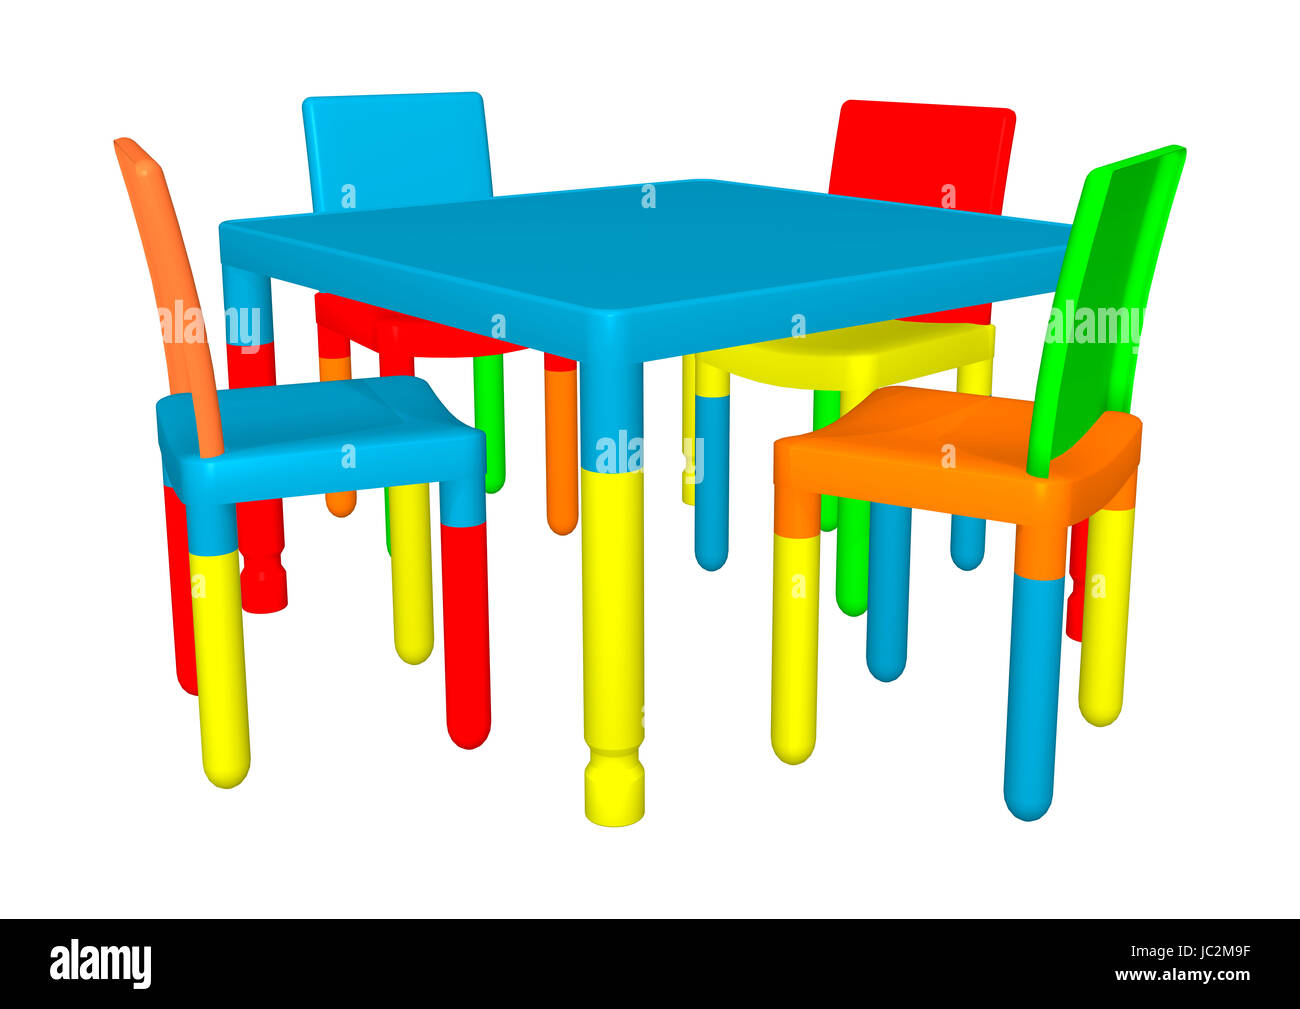 preschool chair. 3d Digital Render Of Colorful Preschool Table And Chairs Isolated On White Background Chair C